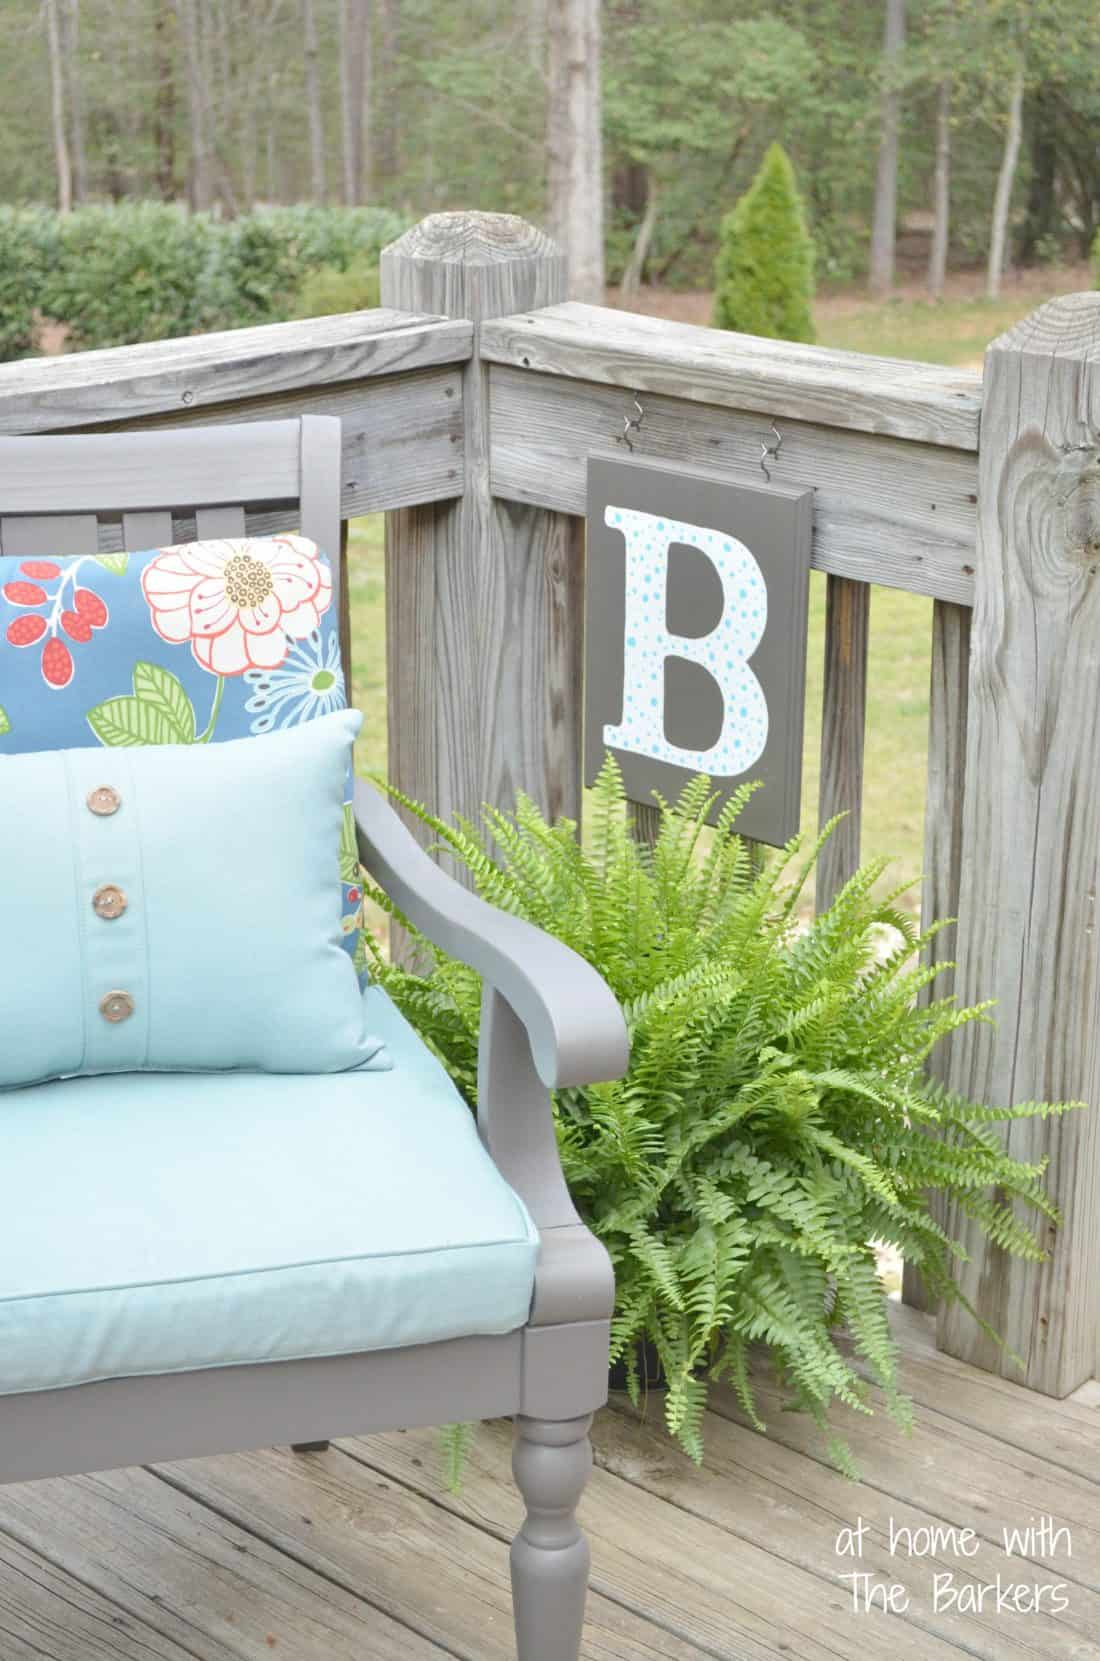 Diy monogram flag at home with the barkers for Monogram homes